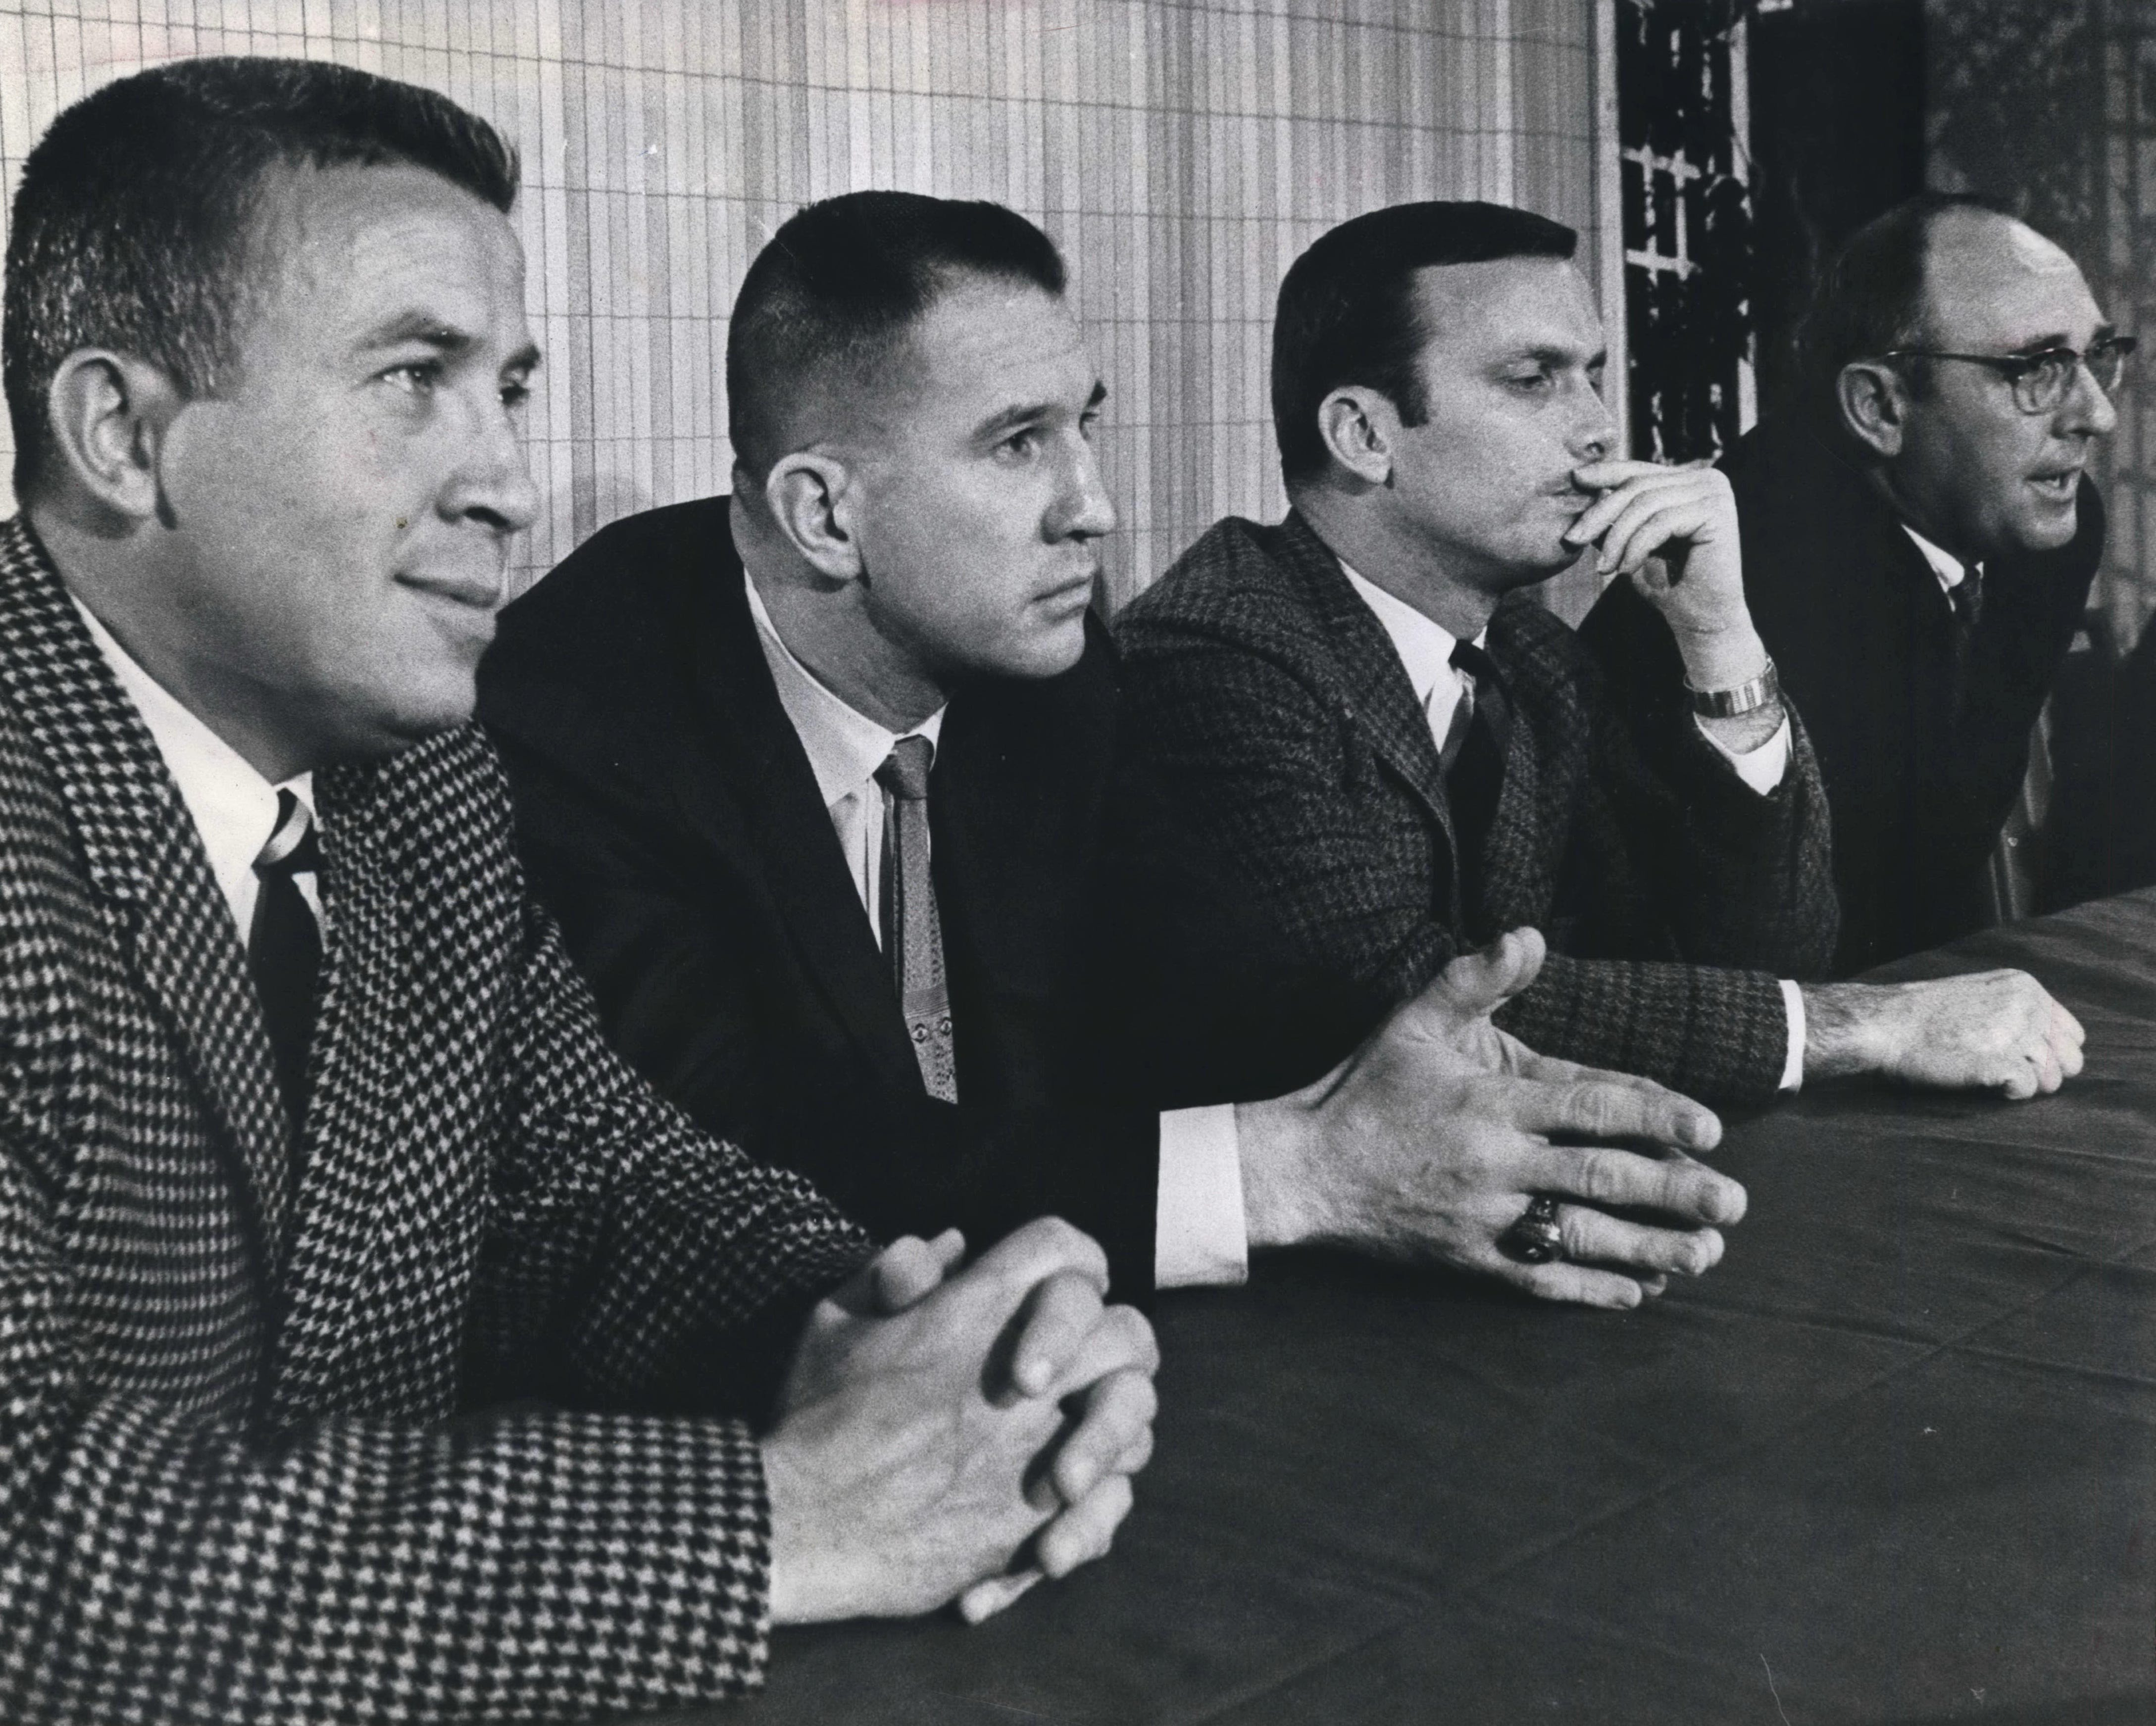 From left, new Milwaukee Bucks general manager John Erickson and coach Larry Costello are introduced. From right is director of operations Ray Patterson and assistant coach Tom Nissalke.